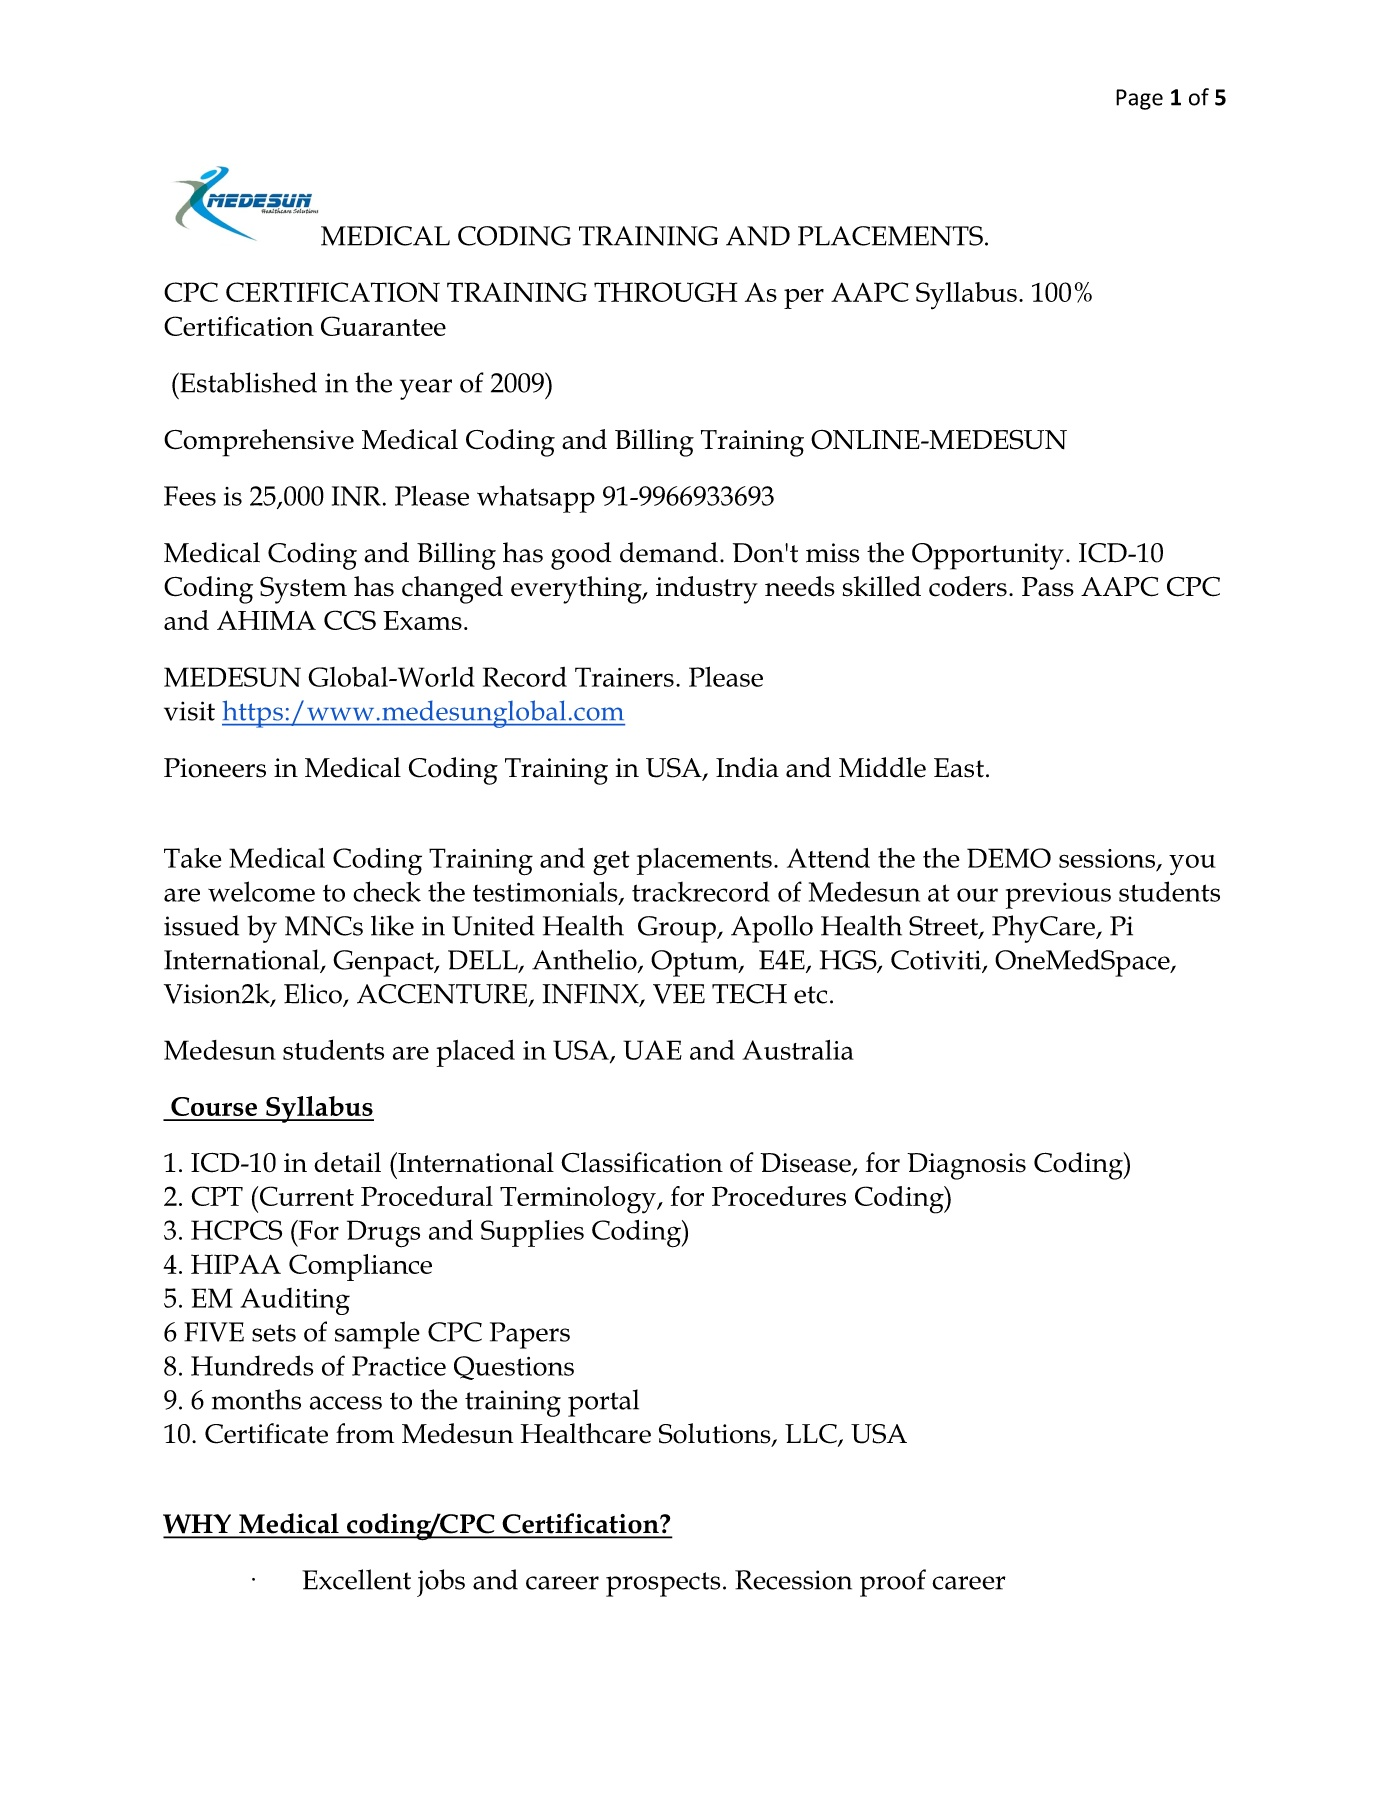 Medical Coding Training Online Pages 1 5 Text Version